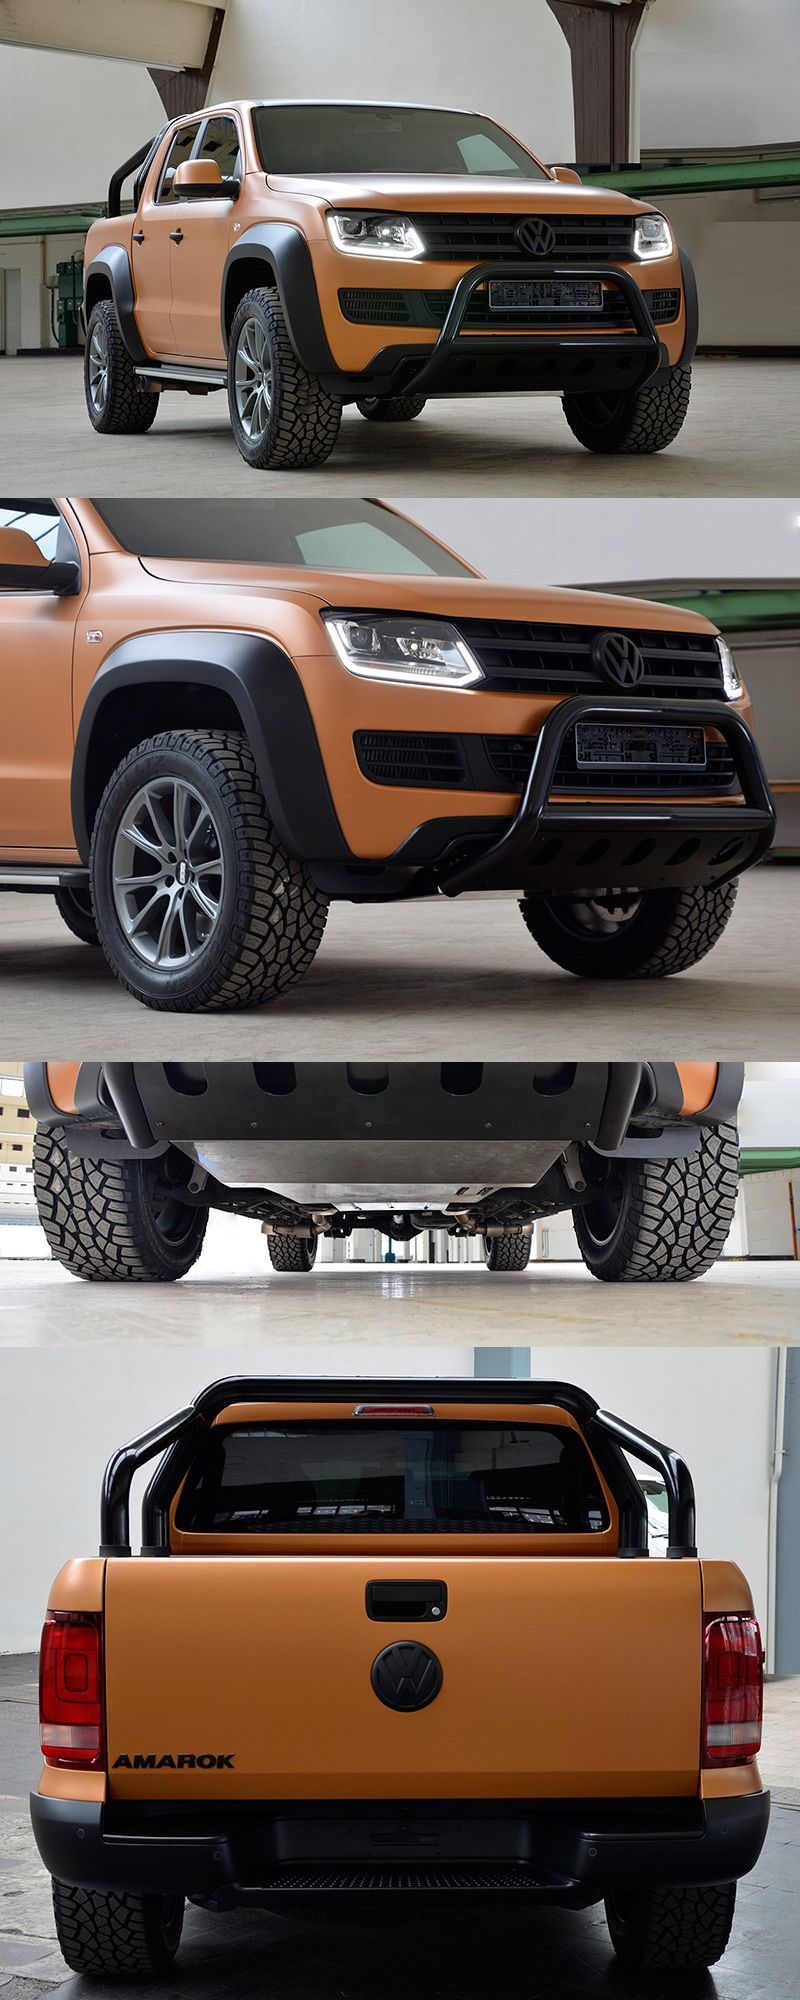 vw amarok by mtm cars bikes pinterest vw amarok. Black Bedroom Furniture Sets. Home Design Ideas